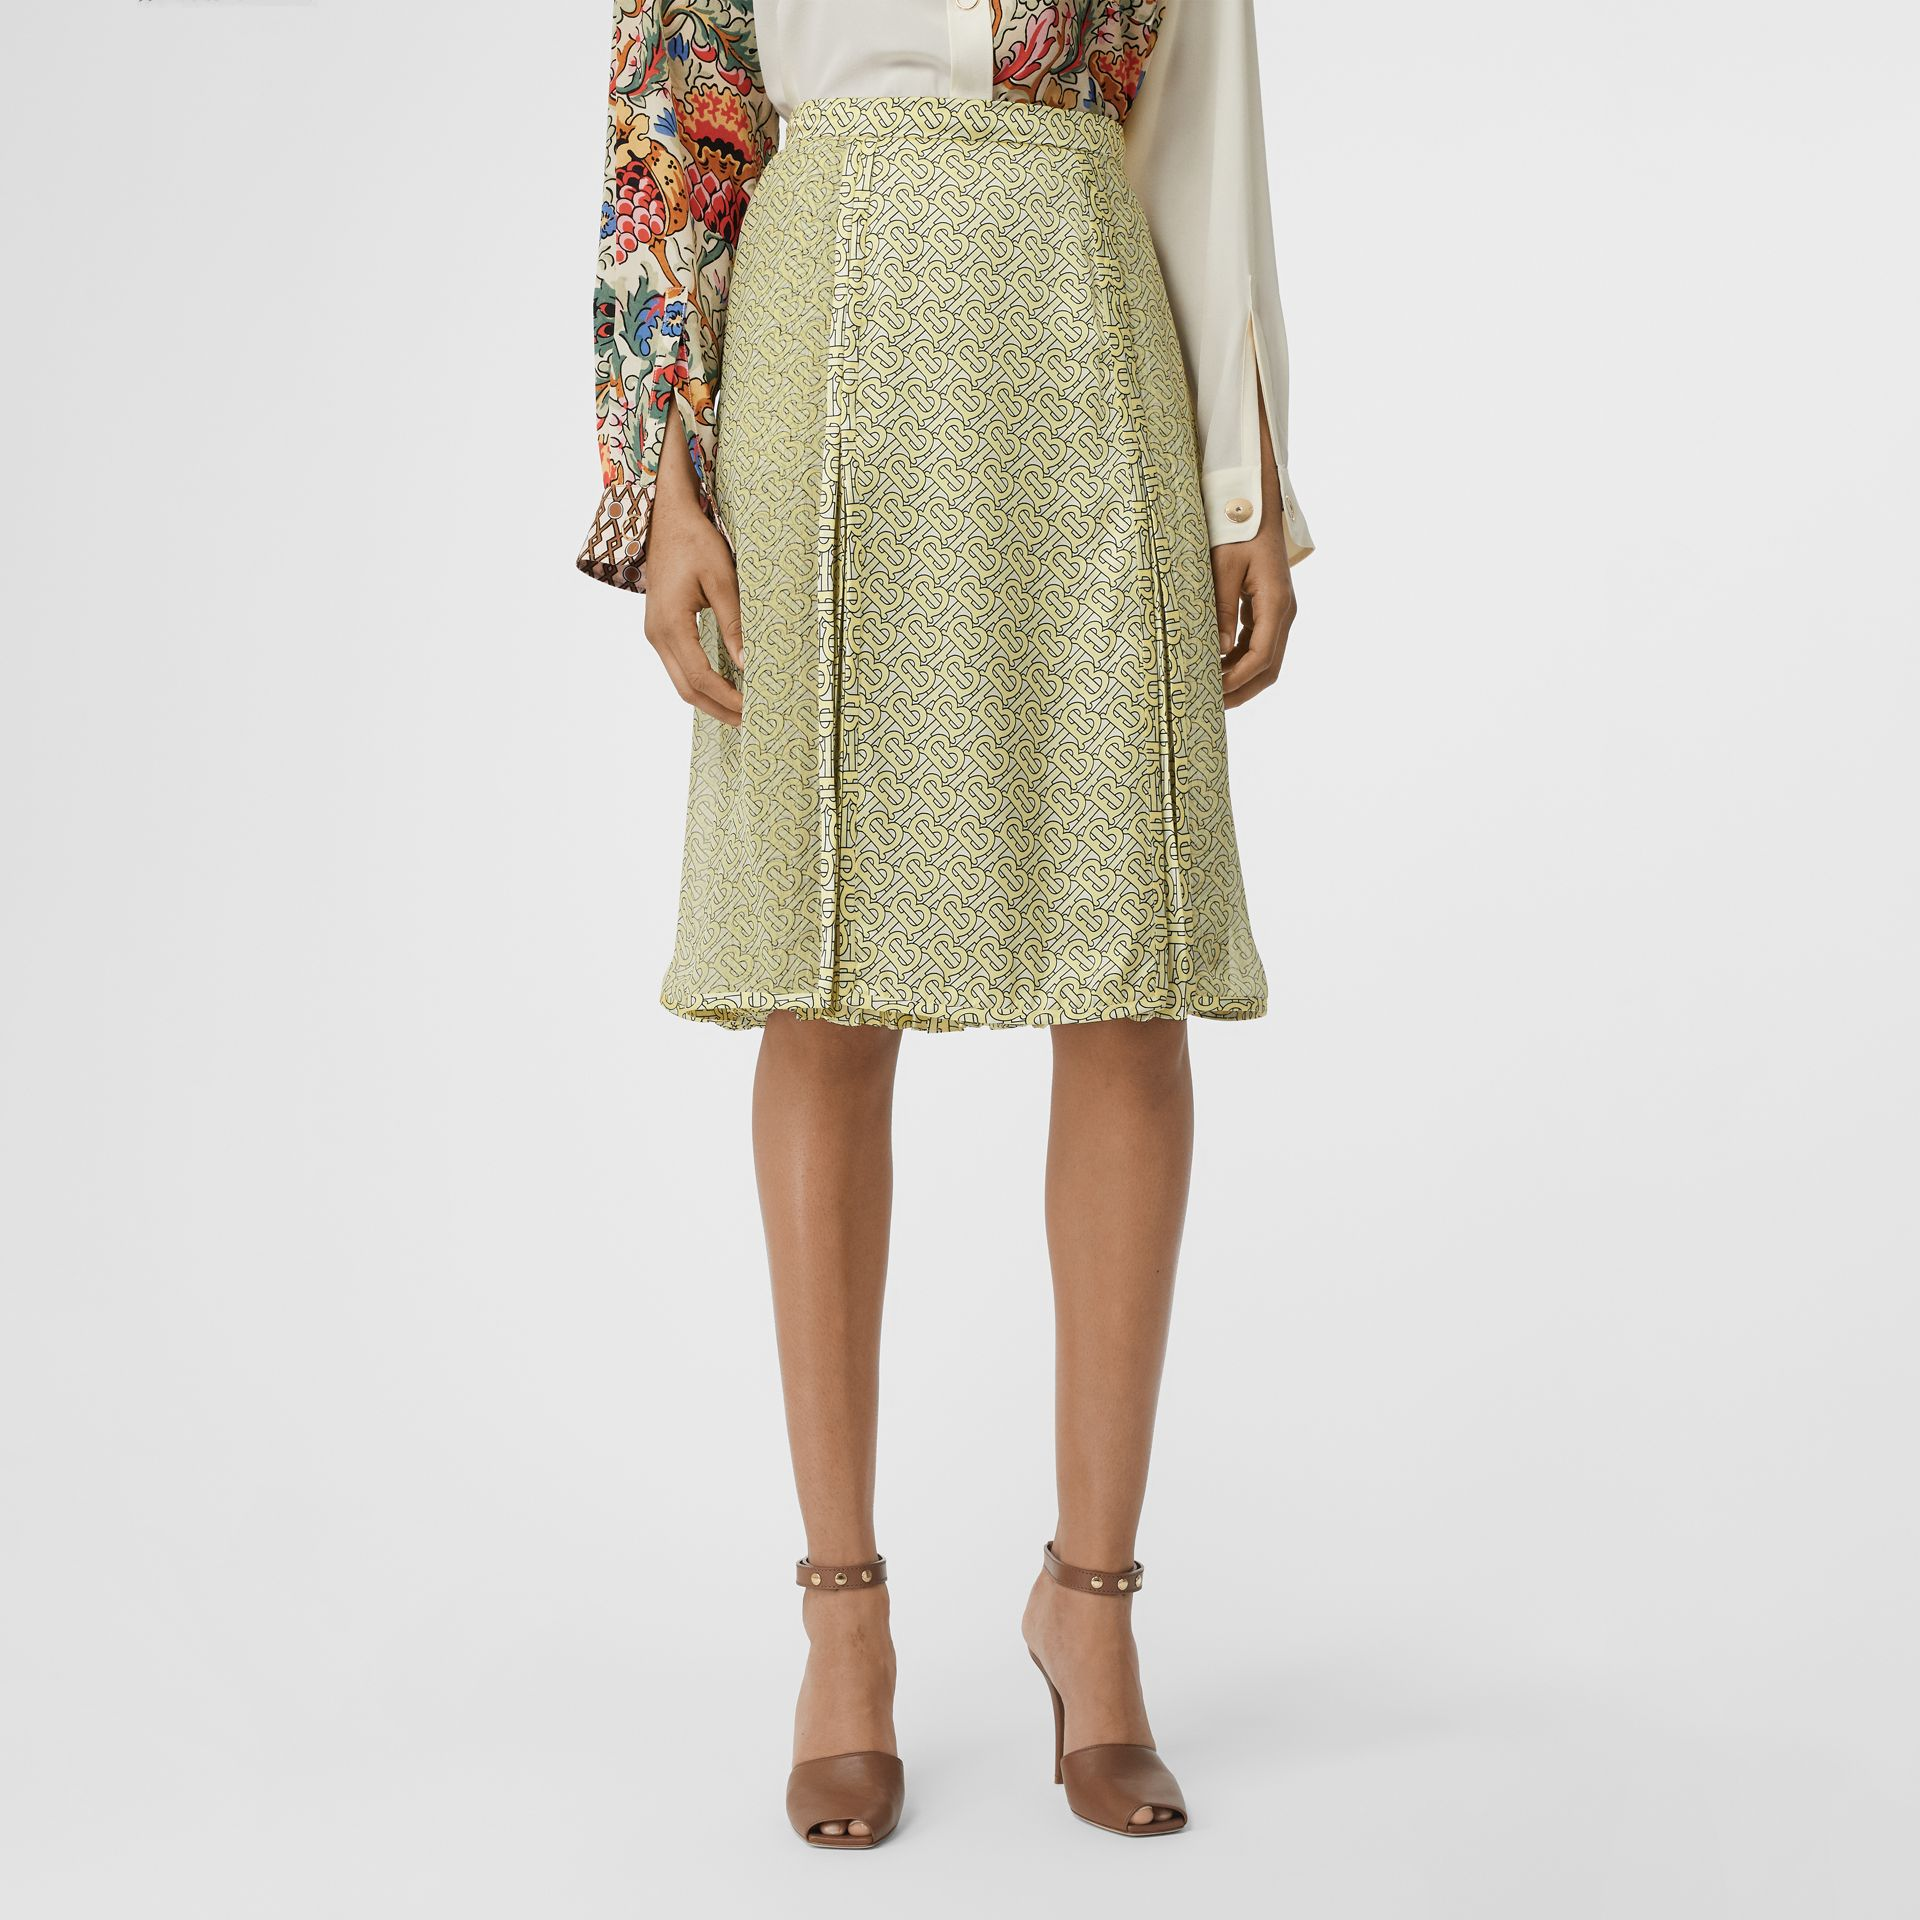 Monogram Print Silk Pleated Skirt in Pale Yellow - Women | Burberry - gallery image 4